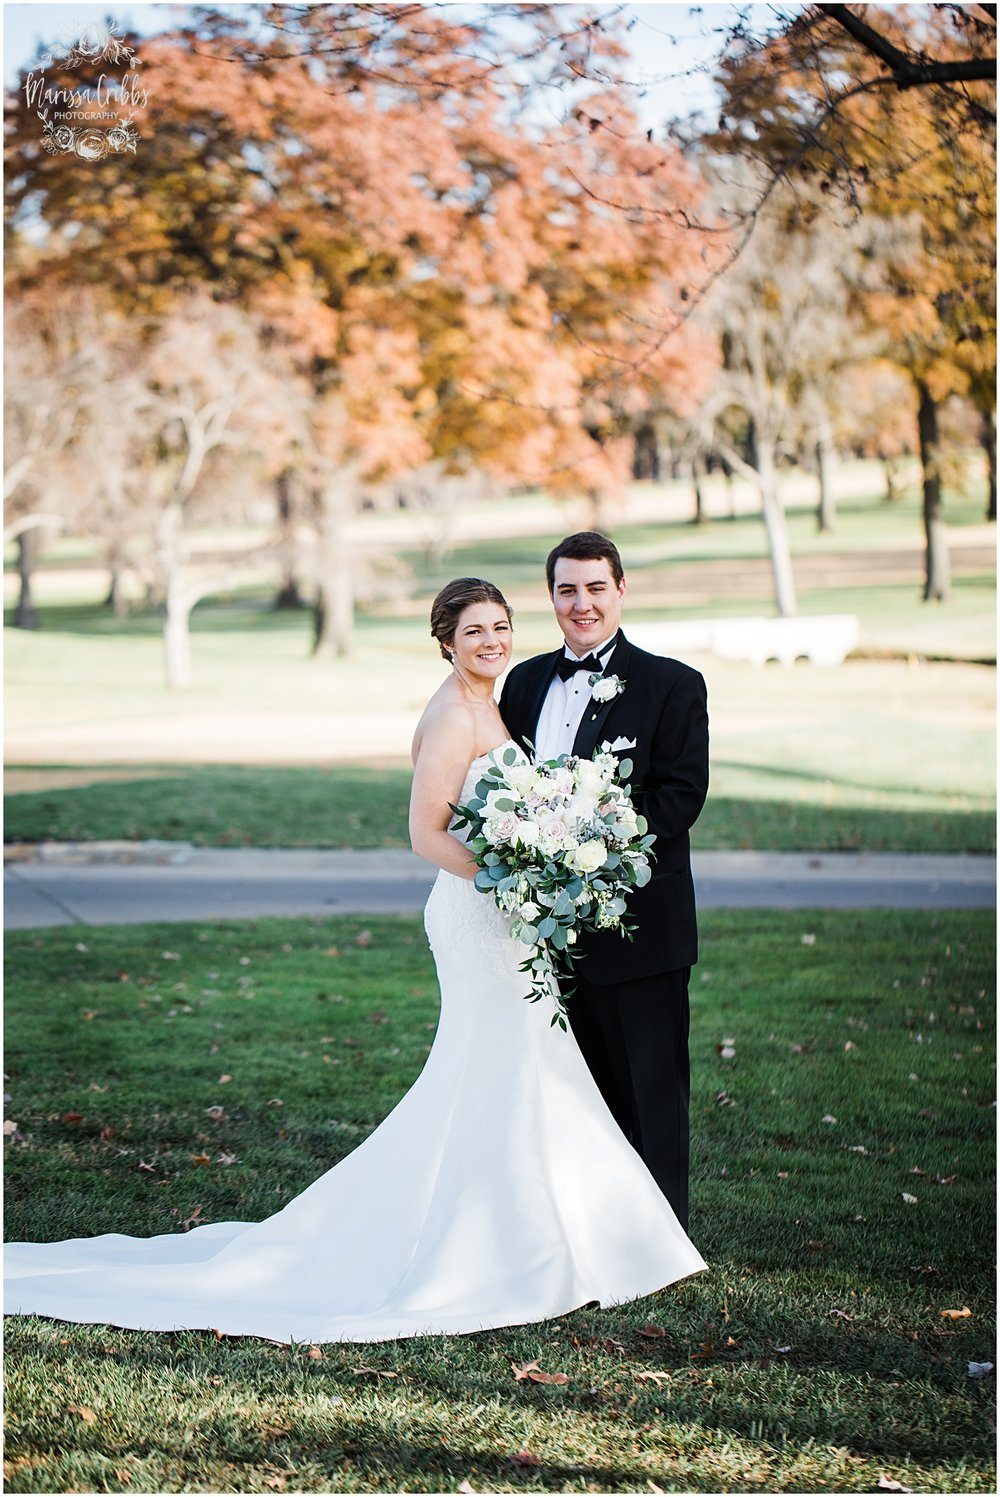 JOE & CAROLINE MARRIED | INDIAN HILLS COUNTRY CLUB | MARISSA CRIBBS PHOTOGRAPHY_7196.jpg